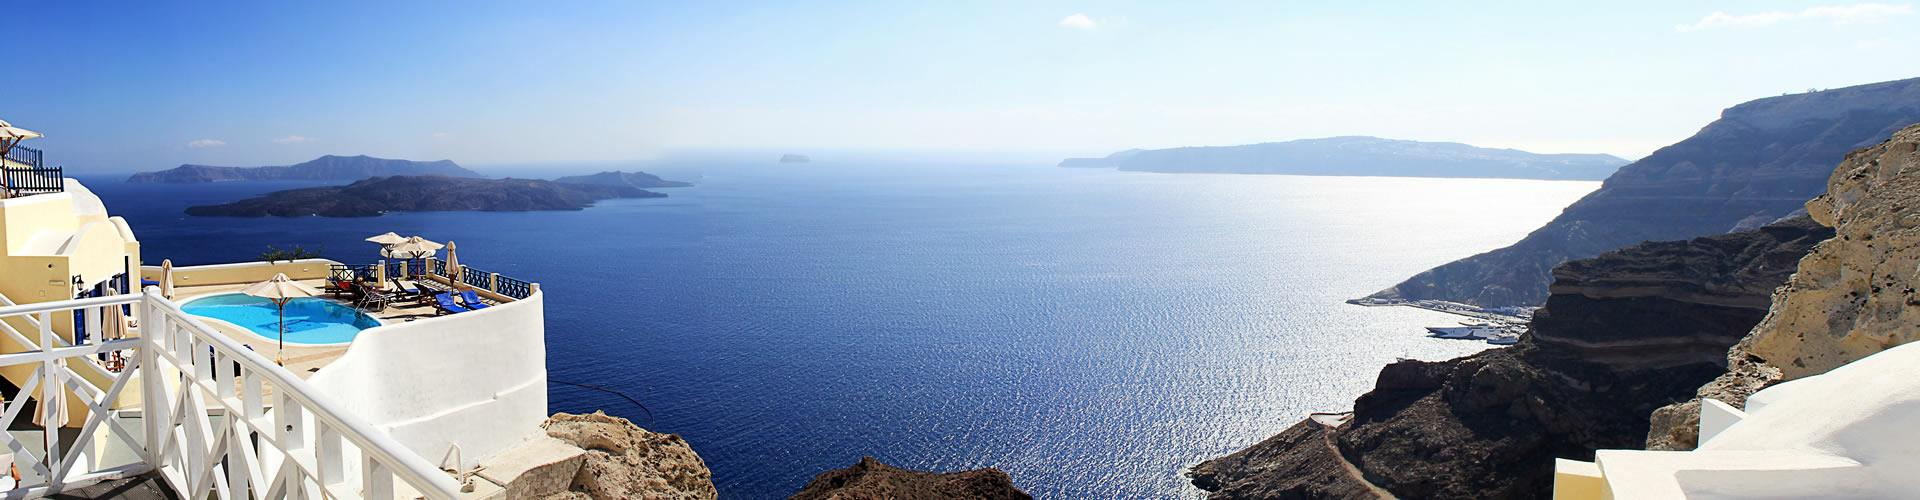 Places to stay in Santorini with great view